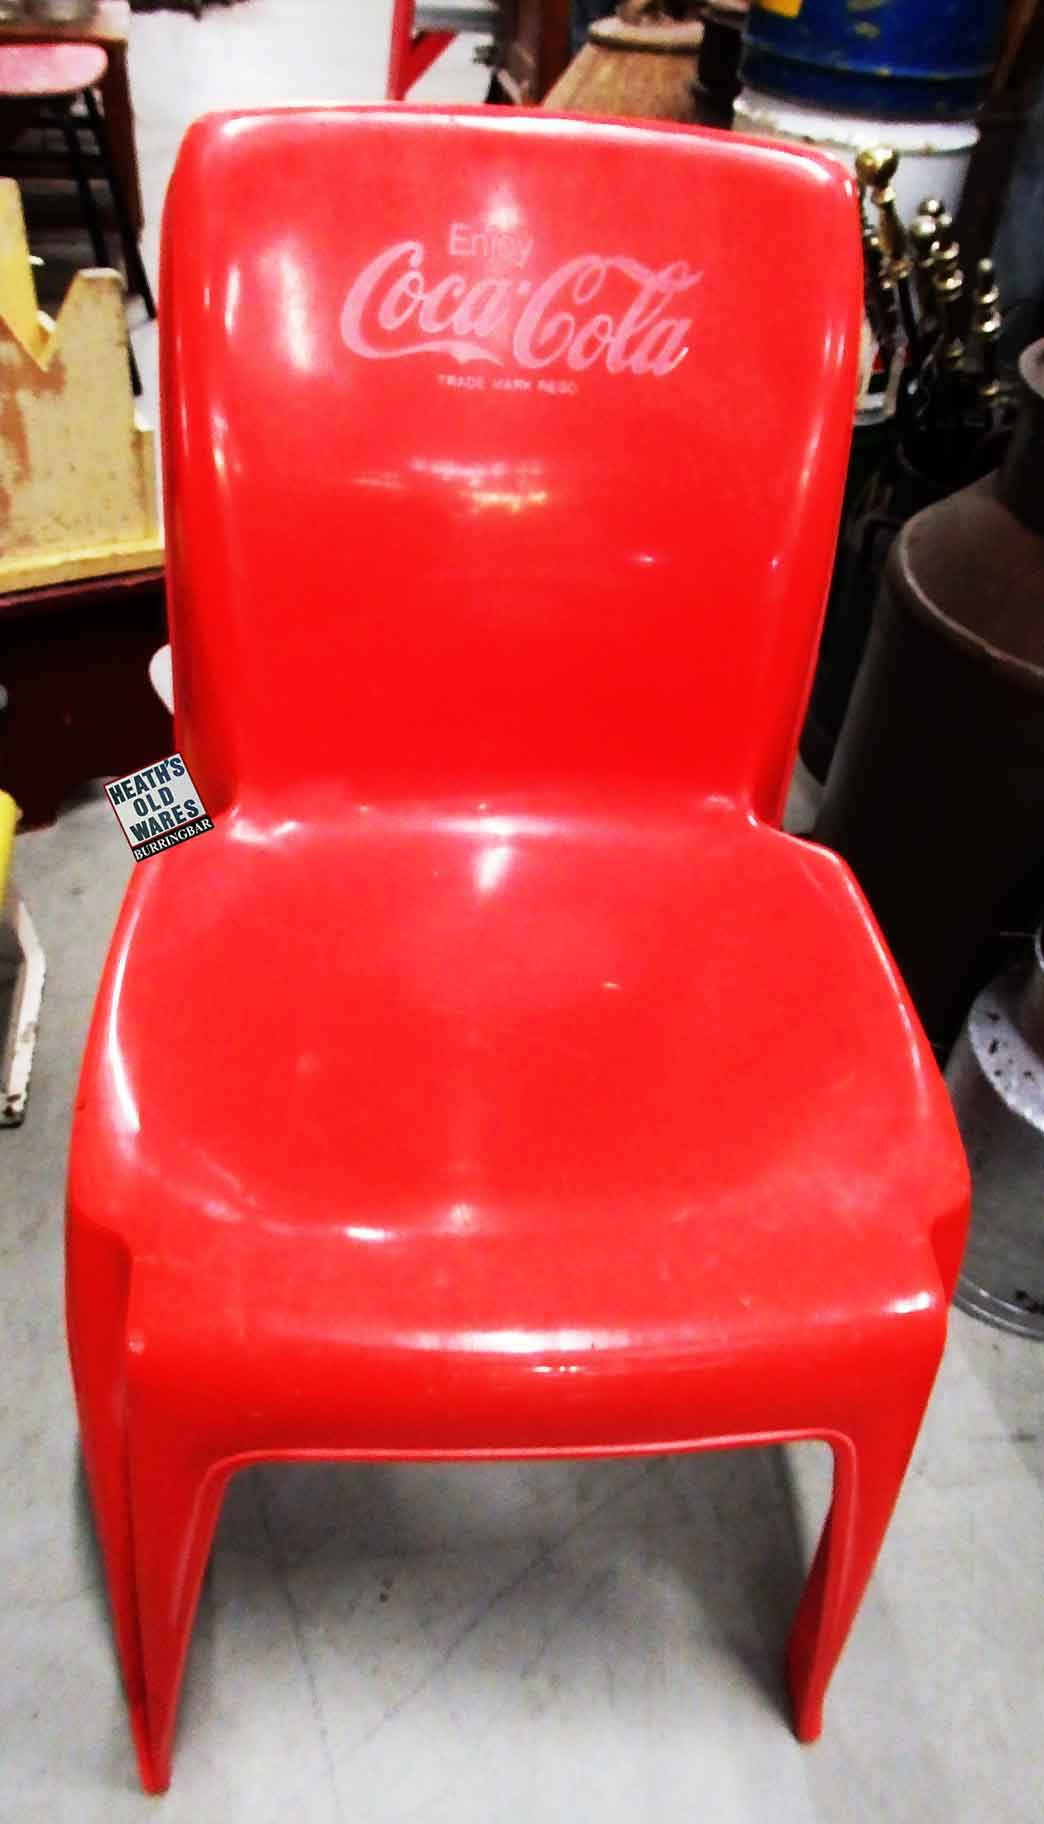 Vintage sebel red coca-cola plastic chairs $30 each for sale at Heaths Old Wares, Collectables, Antiques & Industrial Antiques, 19-21 Broadway, Burringbar NSW 2483 Ph 0266771181 open 7 days